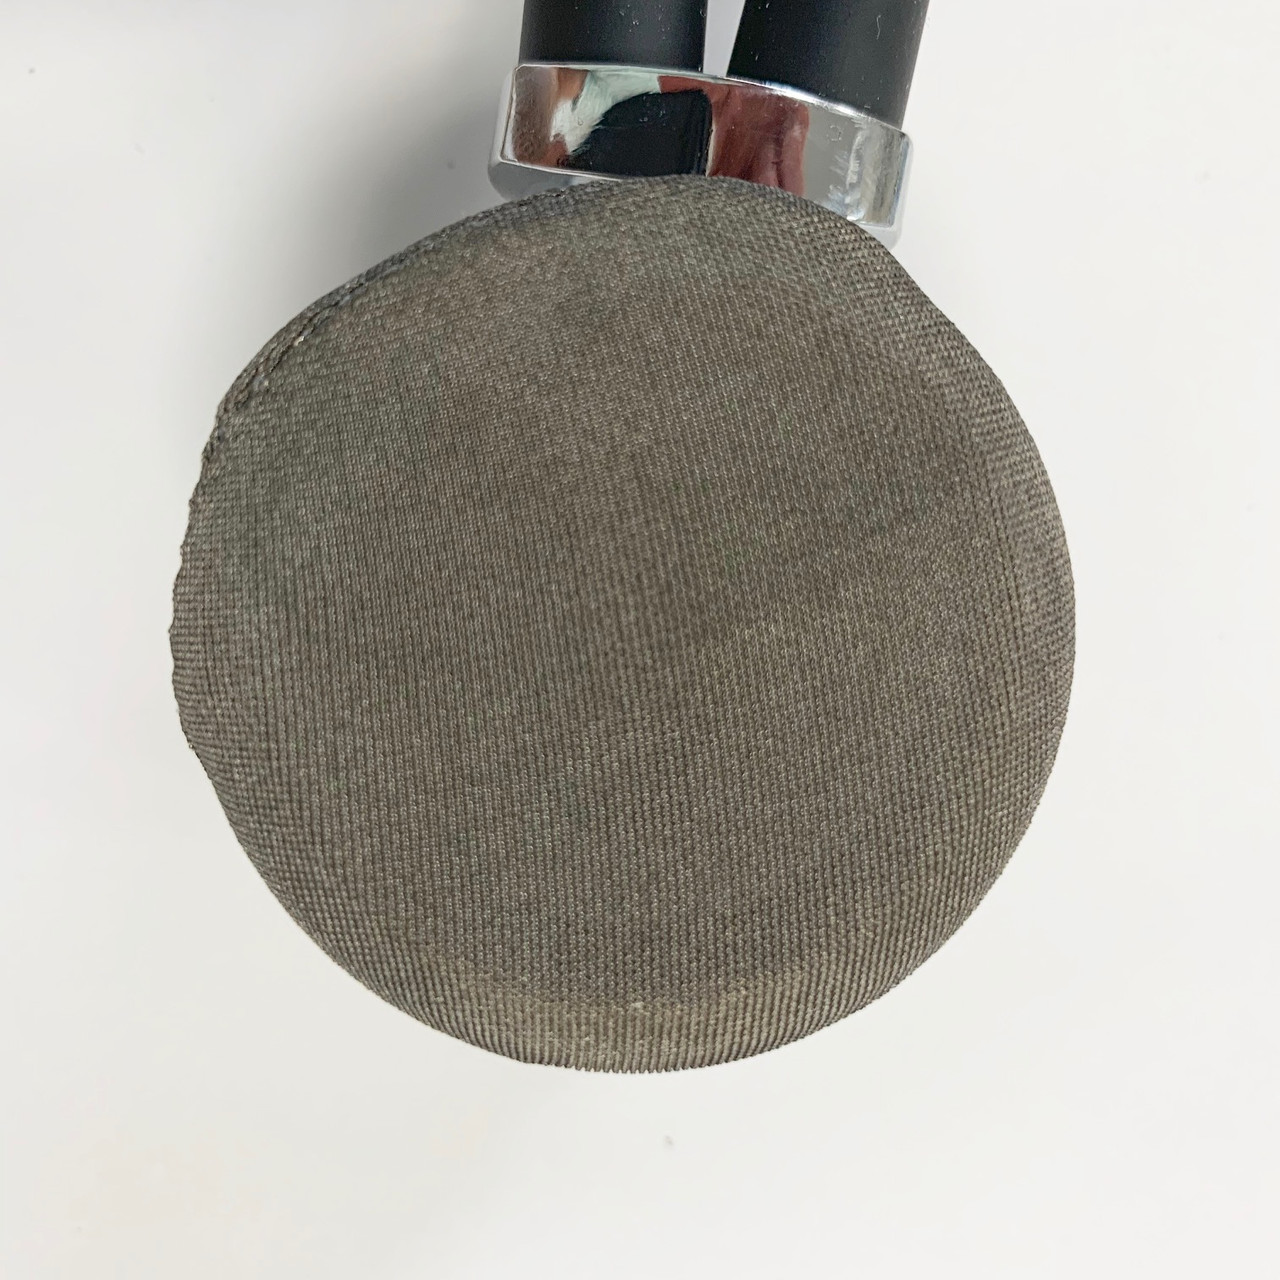 Reusable Stethoscope Cover